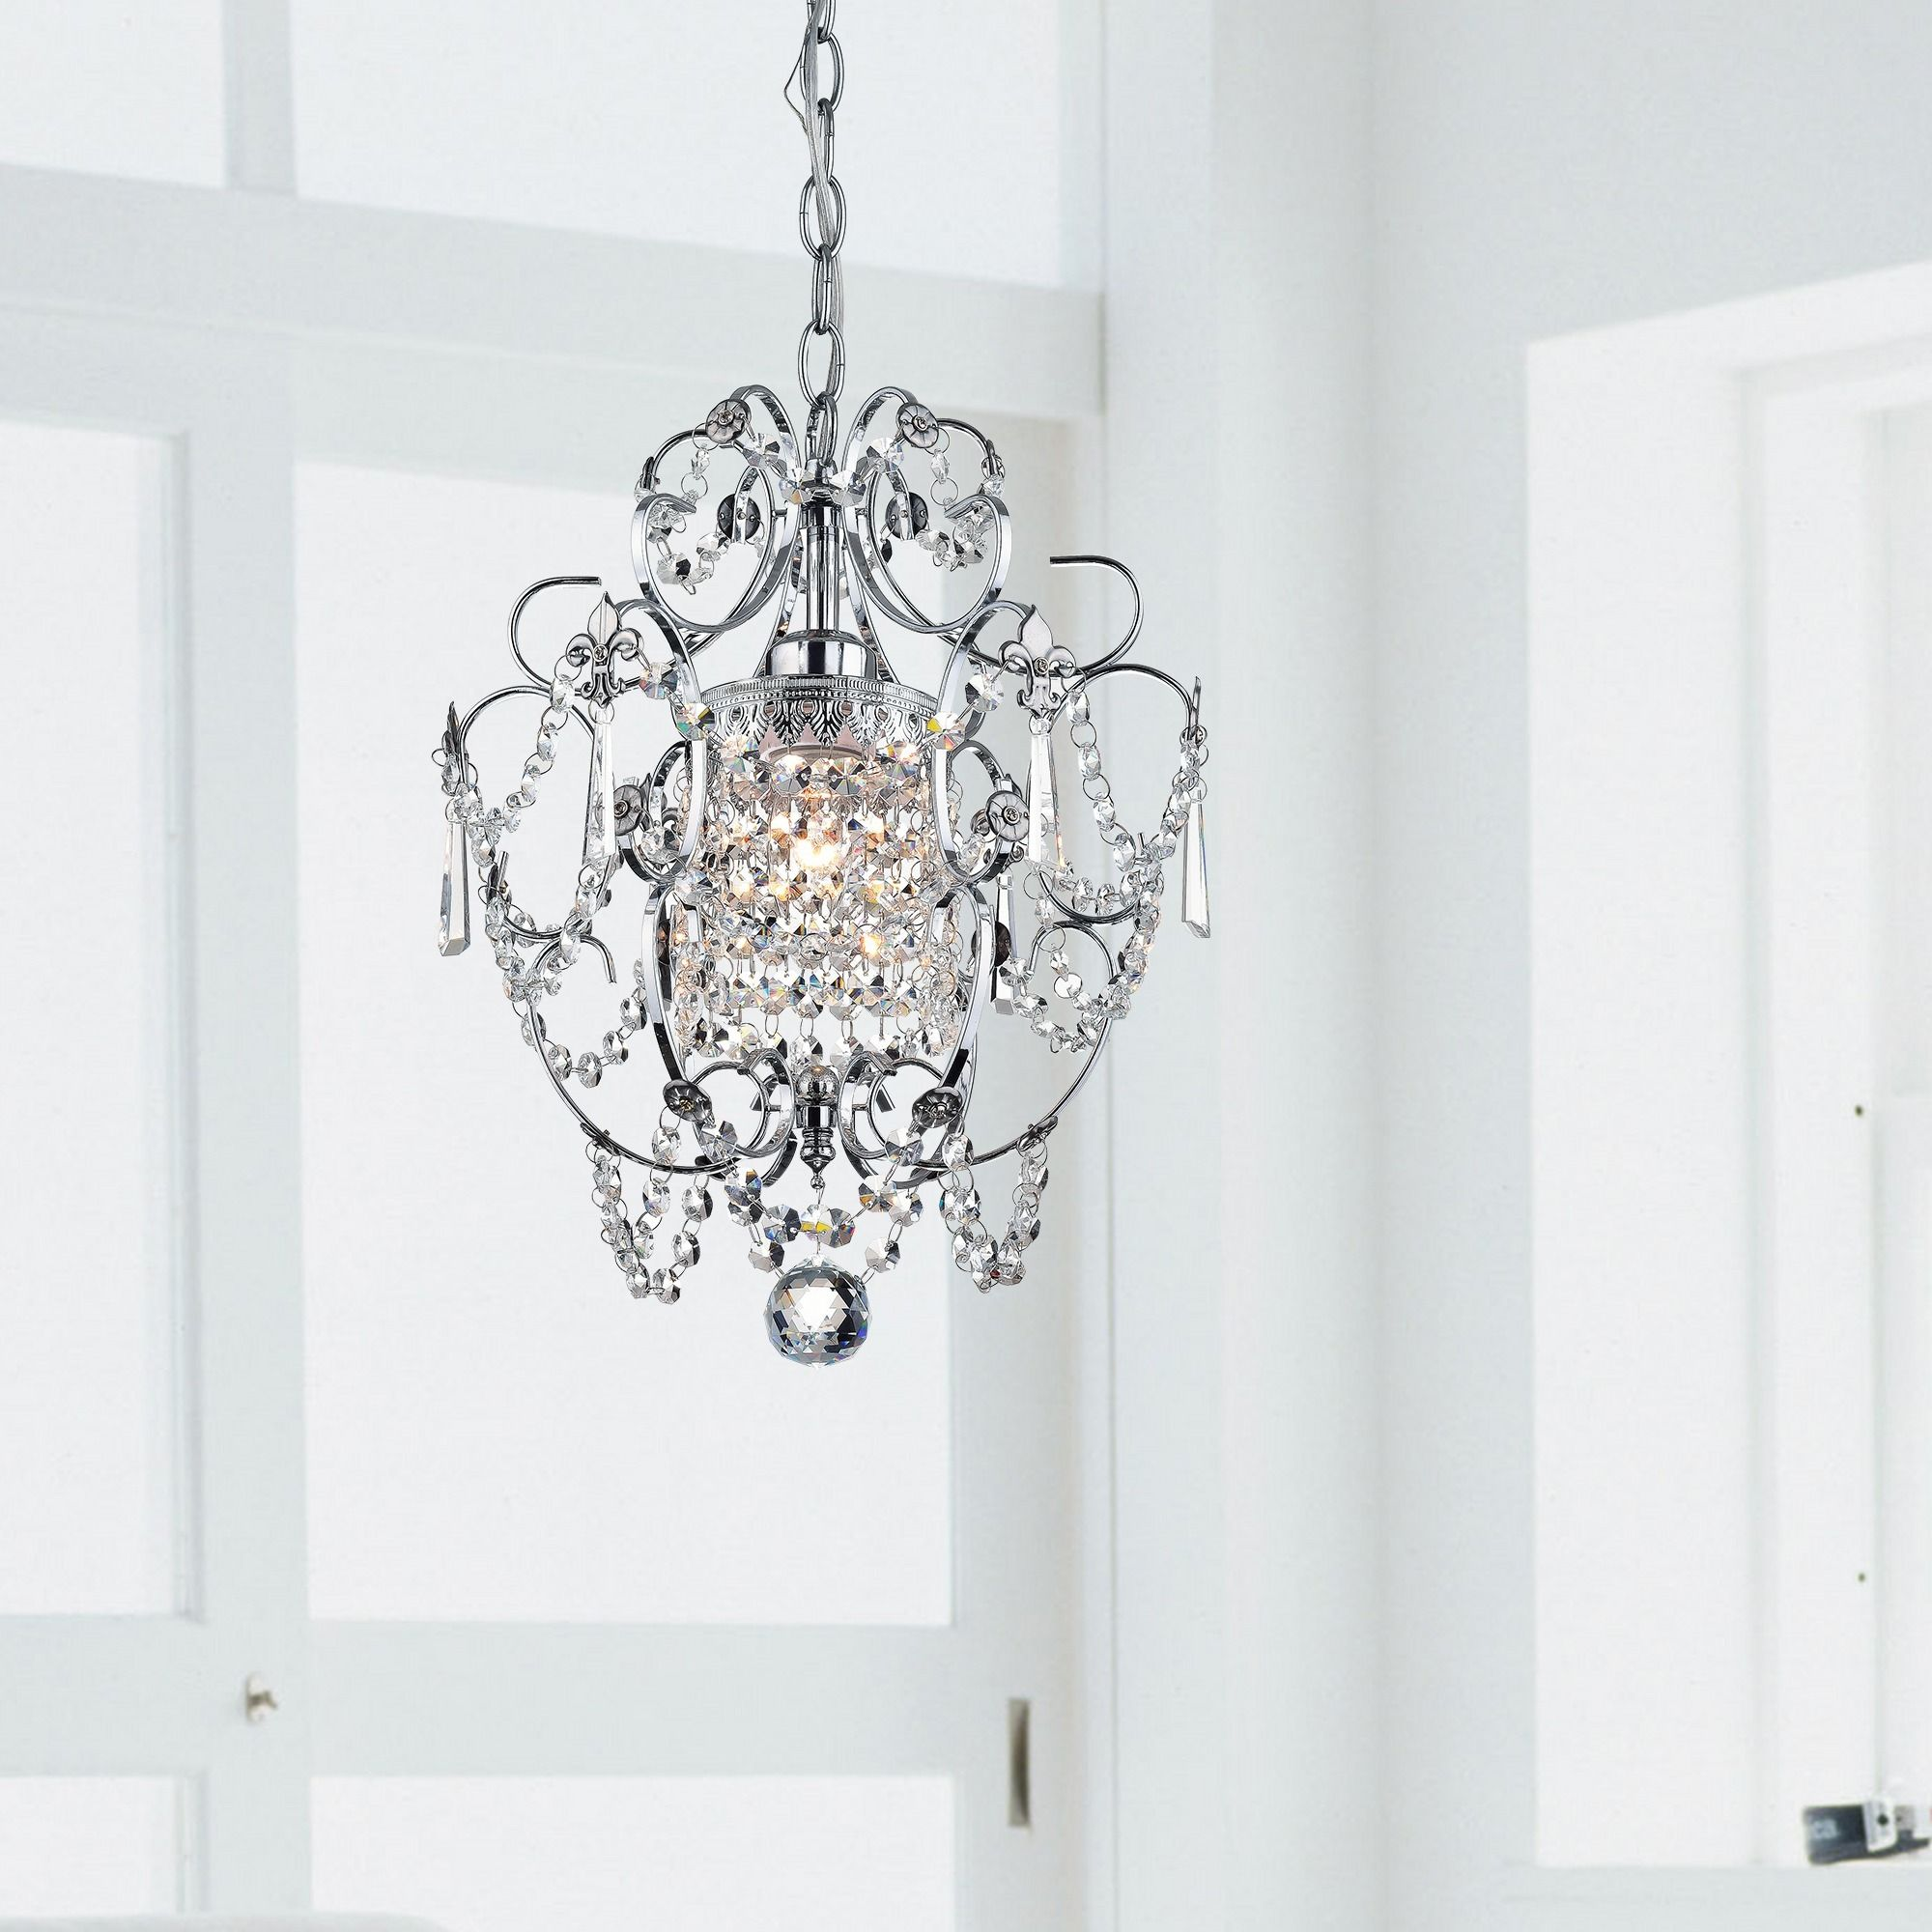 Add elegance to your dining room with this sophisticated chrome add elegance to your dining room with this sophisticated chrome crystal chandelier the light sparkles aloadofball Choice Image